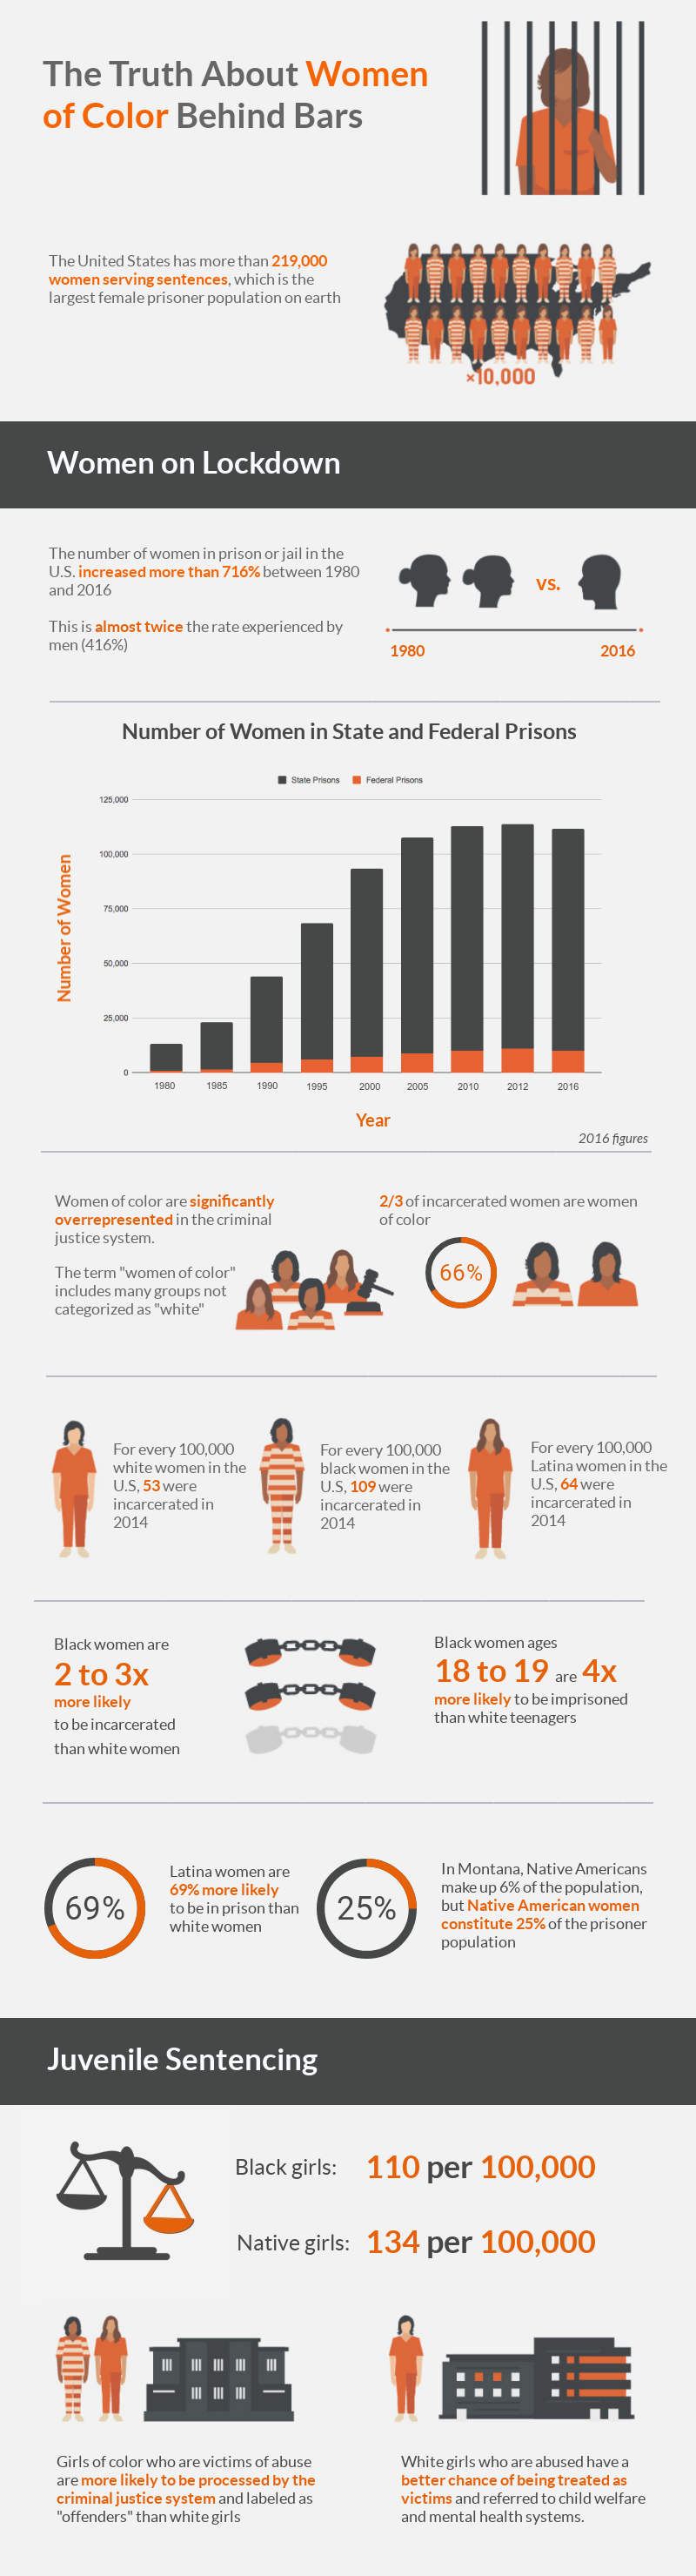 Women-of-Color-Behind-Bars_Intro and Juvenile Sentencing